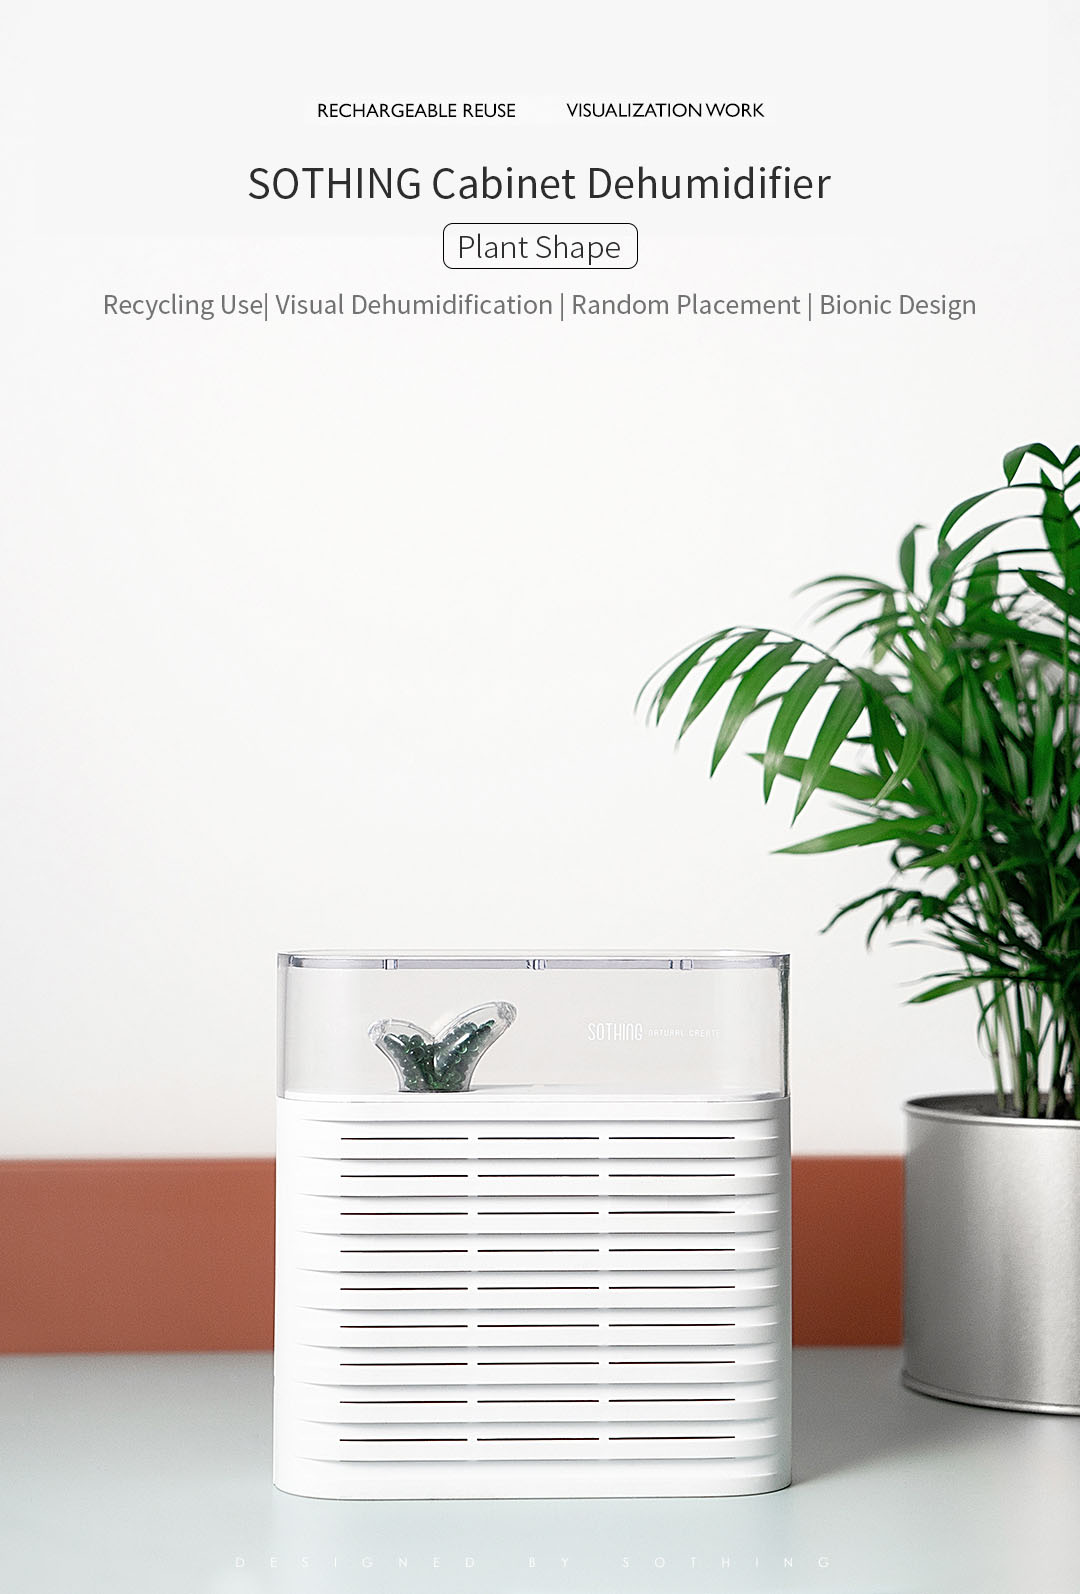 SOTHING Portable Plant Air Dehumidifier 150ml Rechargeable Reuse Air Dryer Moisture Absorber